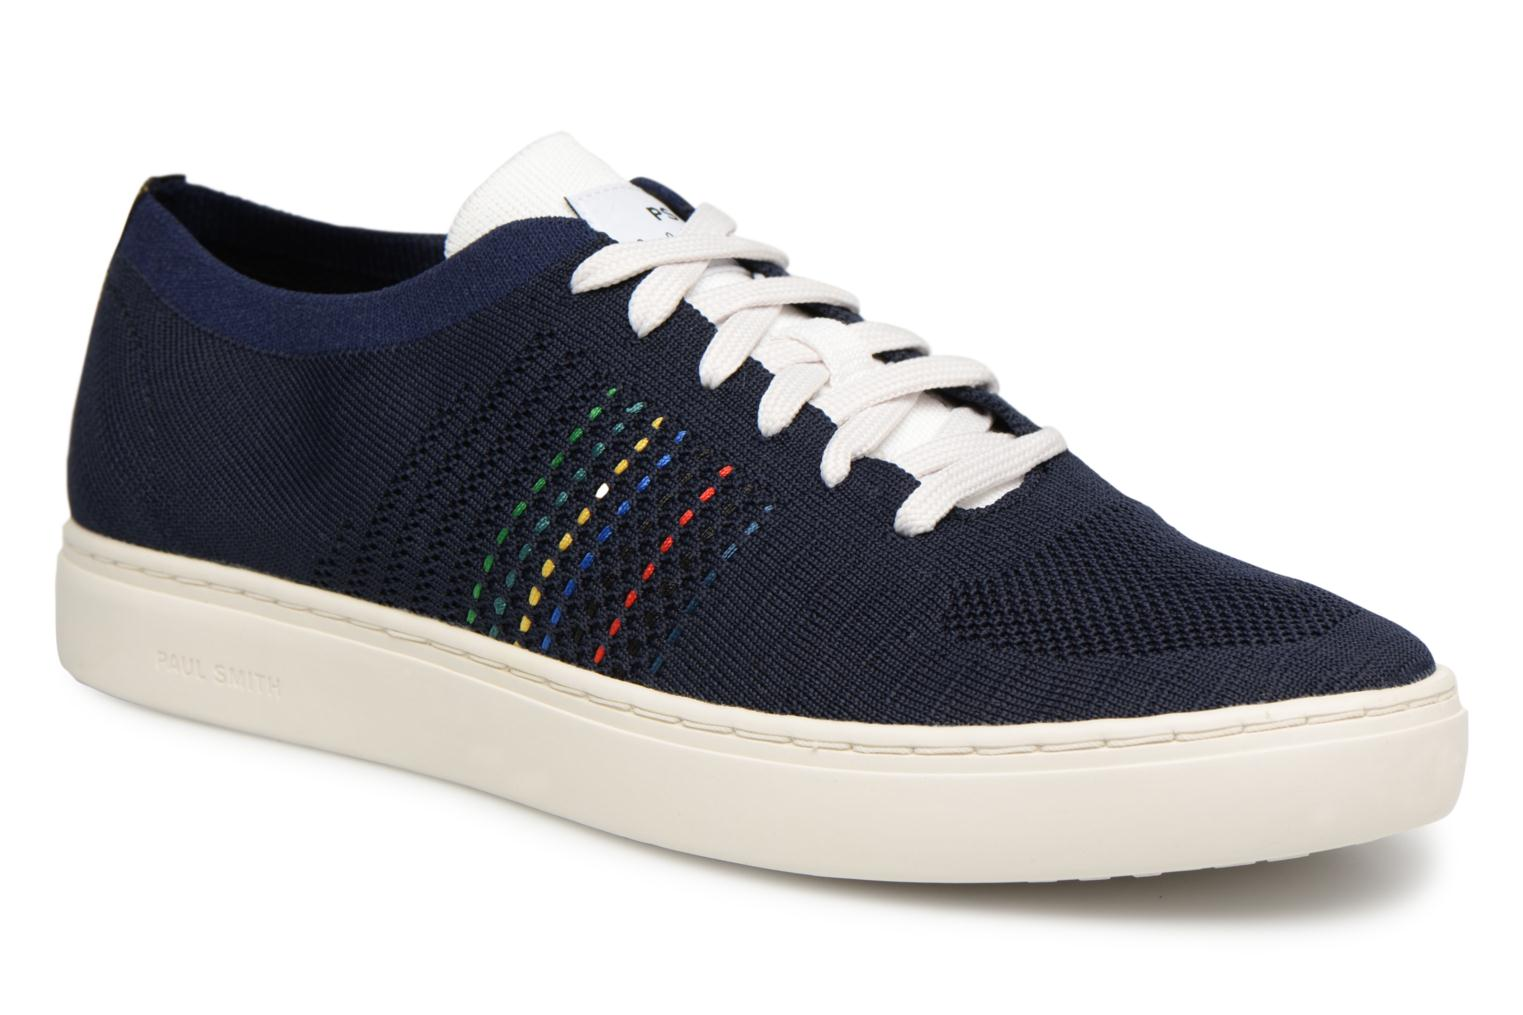 Marques Chaussure luxe homme Paul Smith homme DOYLE 01 White